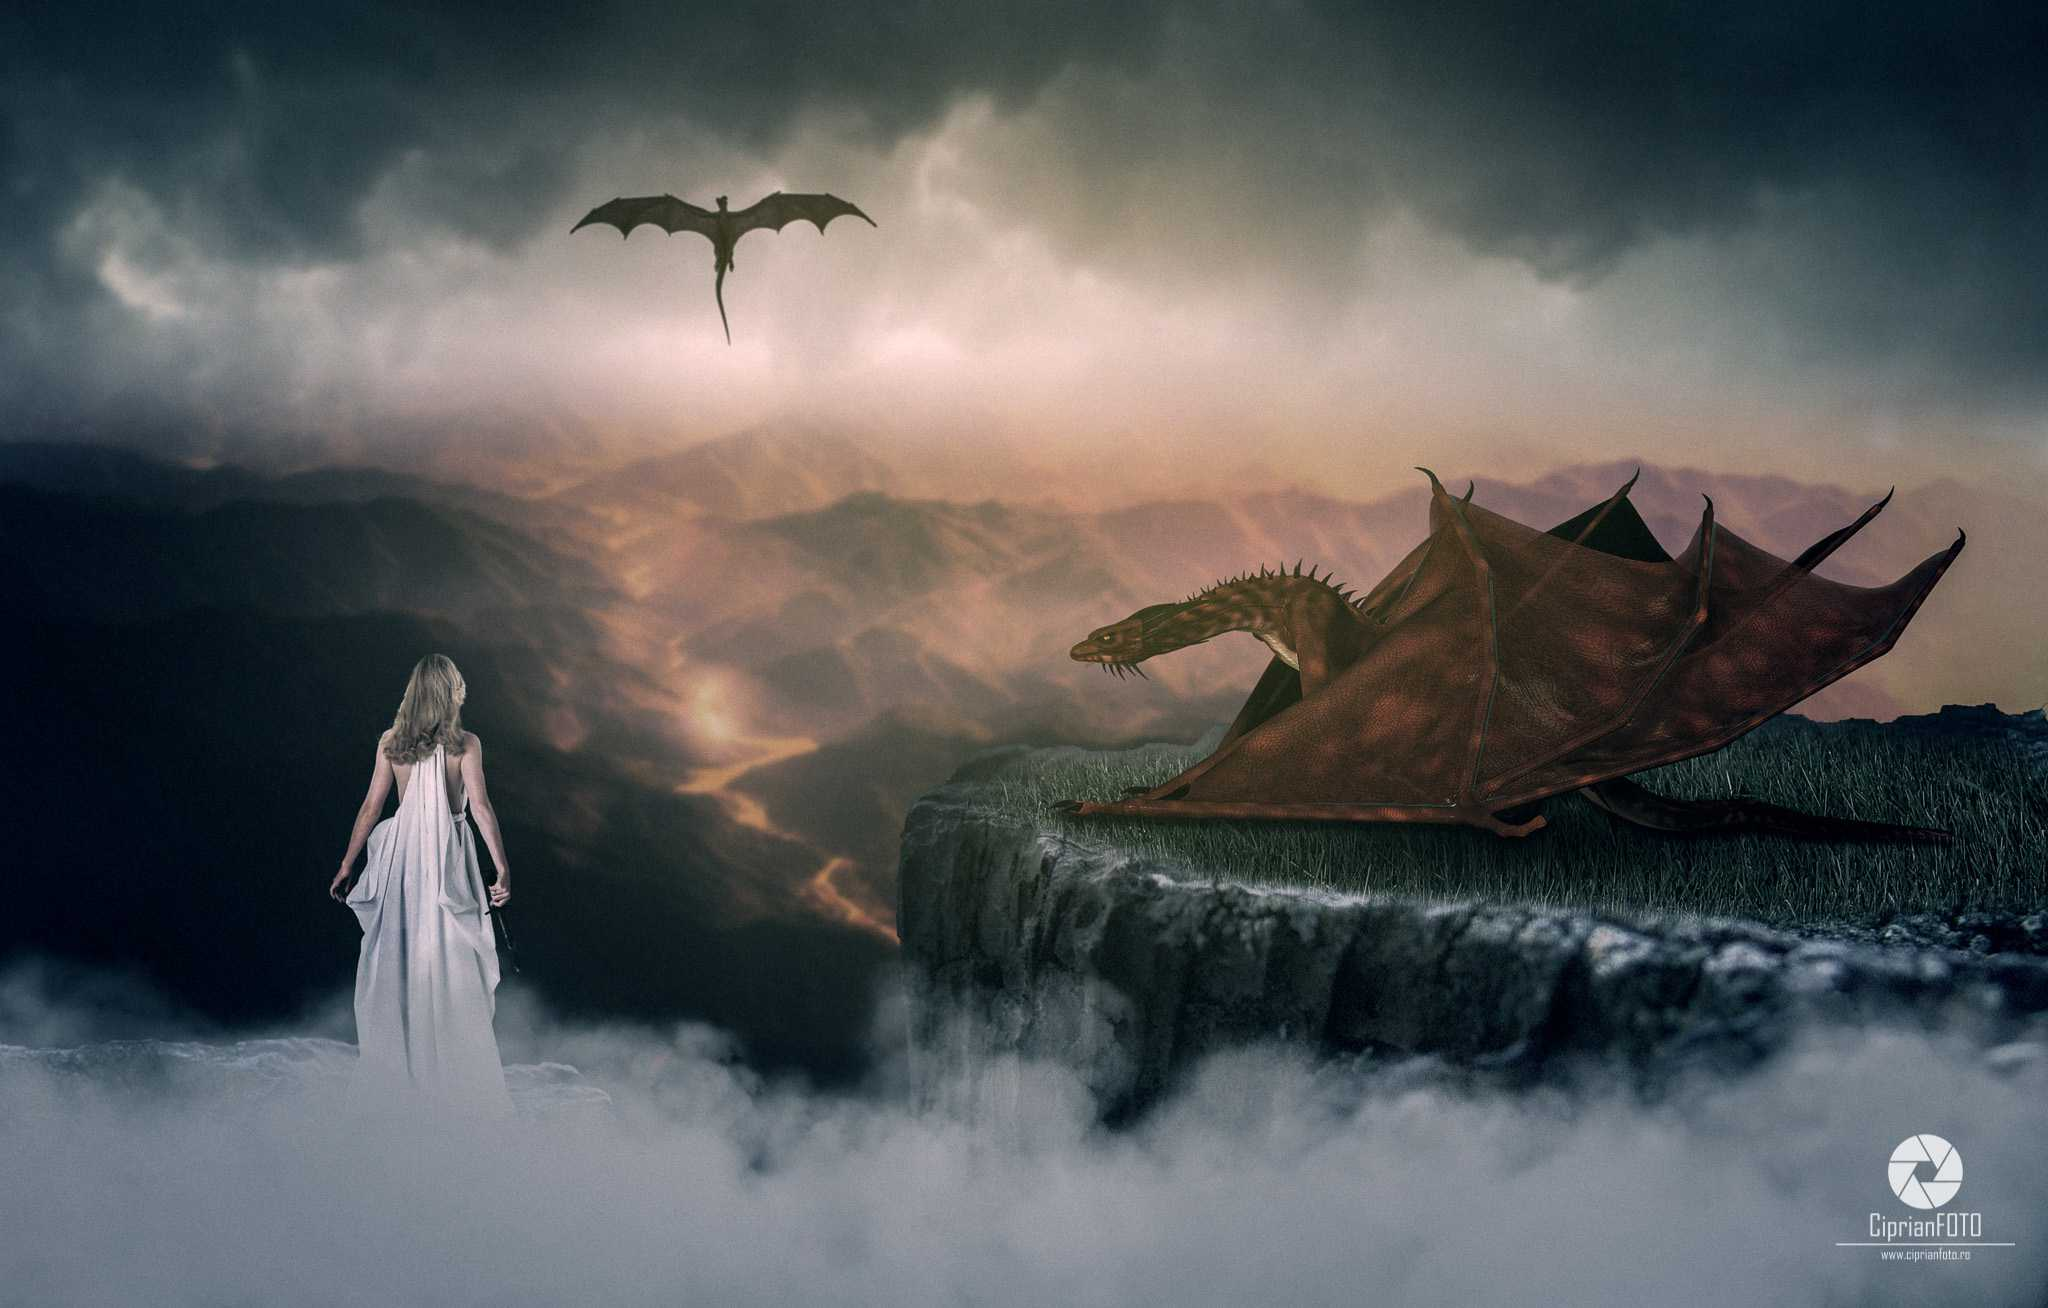 Kill_The_Dragon_Photoshop_Manipulation_Tutorial_CiprianFOTO